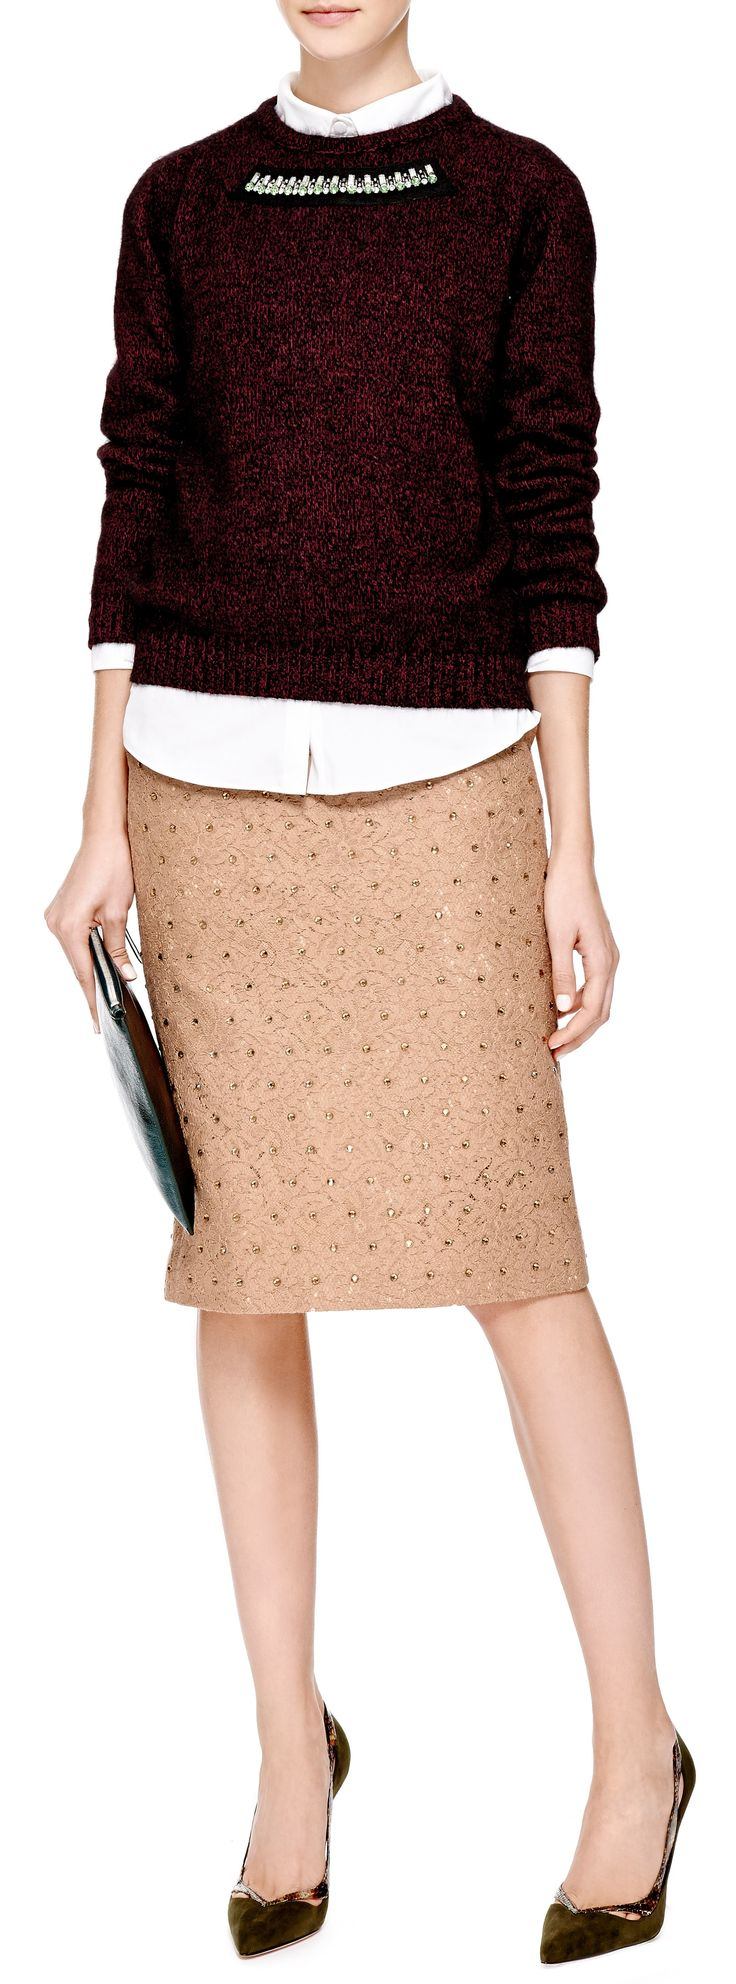 No. 21 Genie Crystal-Embellished Lace Skirt in Camel